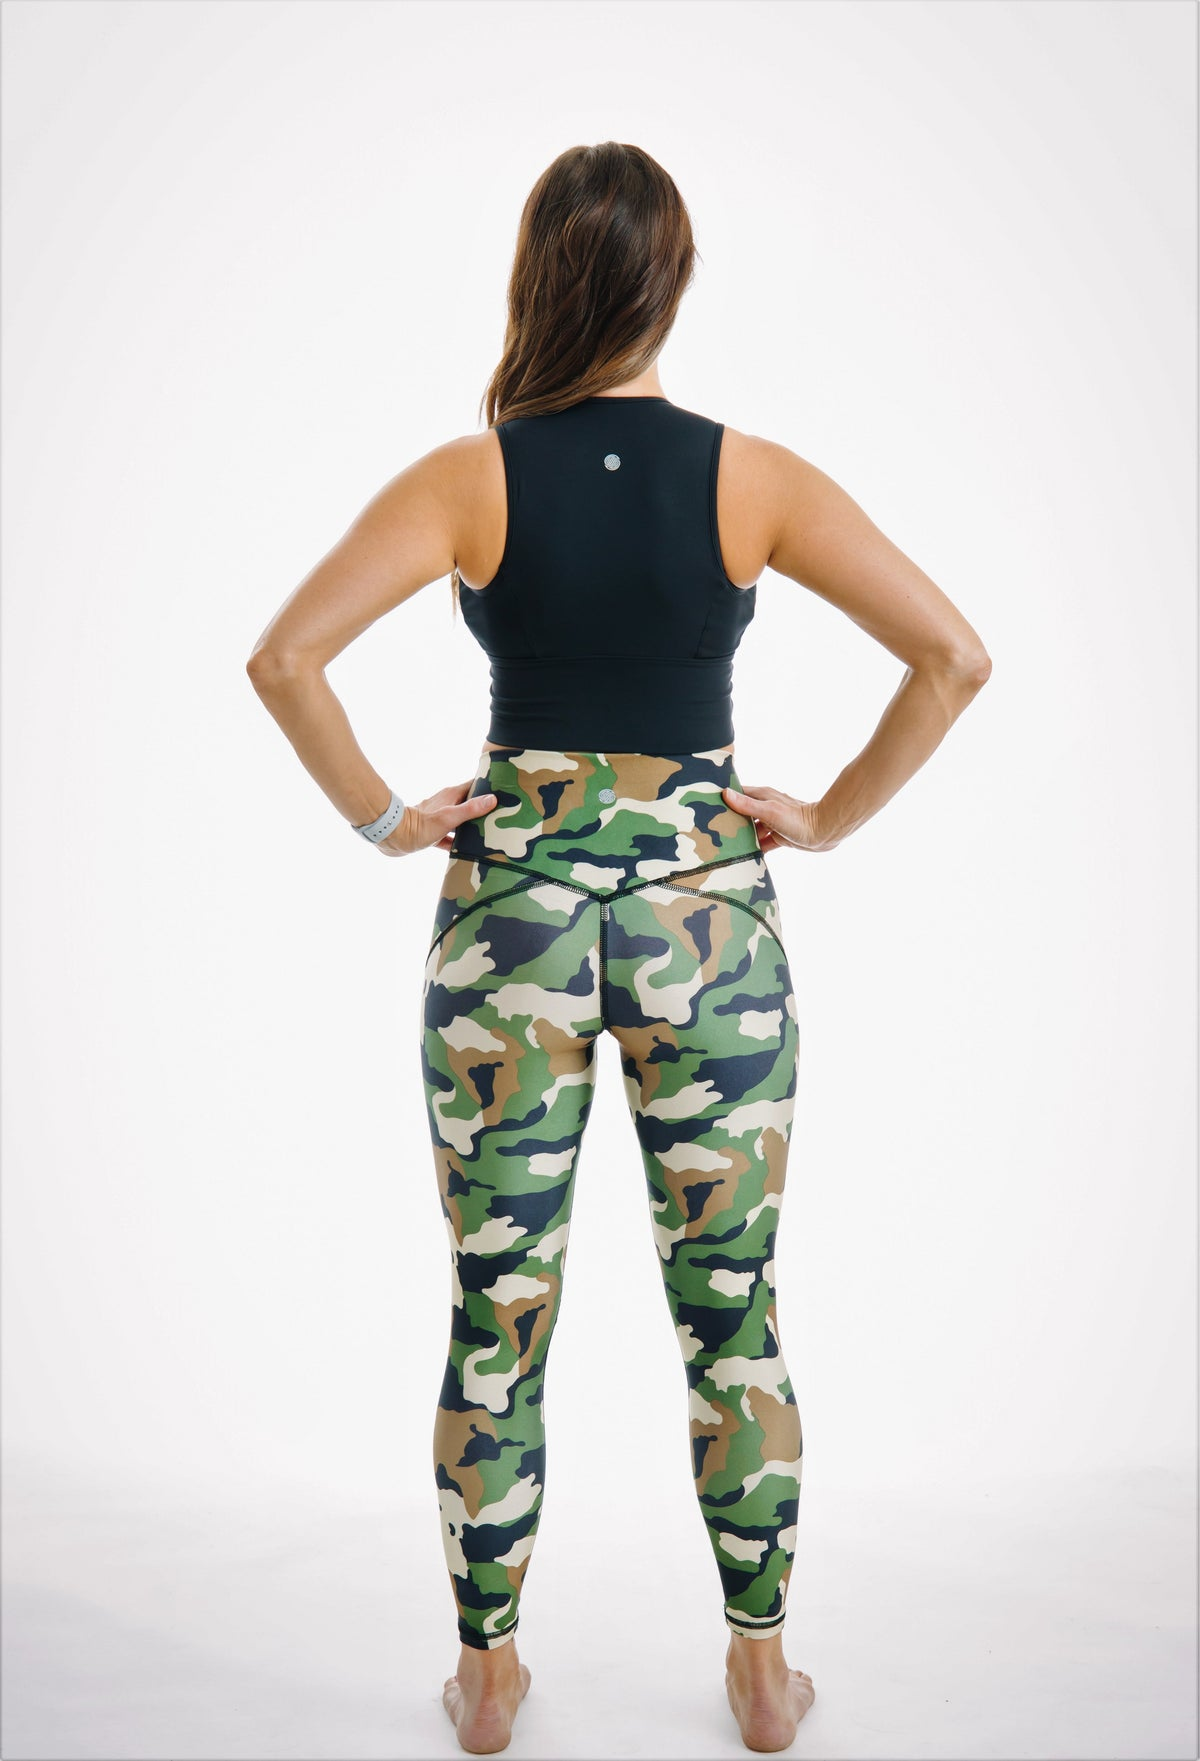 Camo running mesh leggings yoga pants 7/8 length